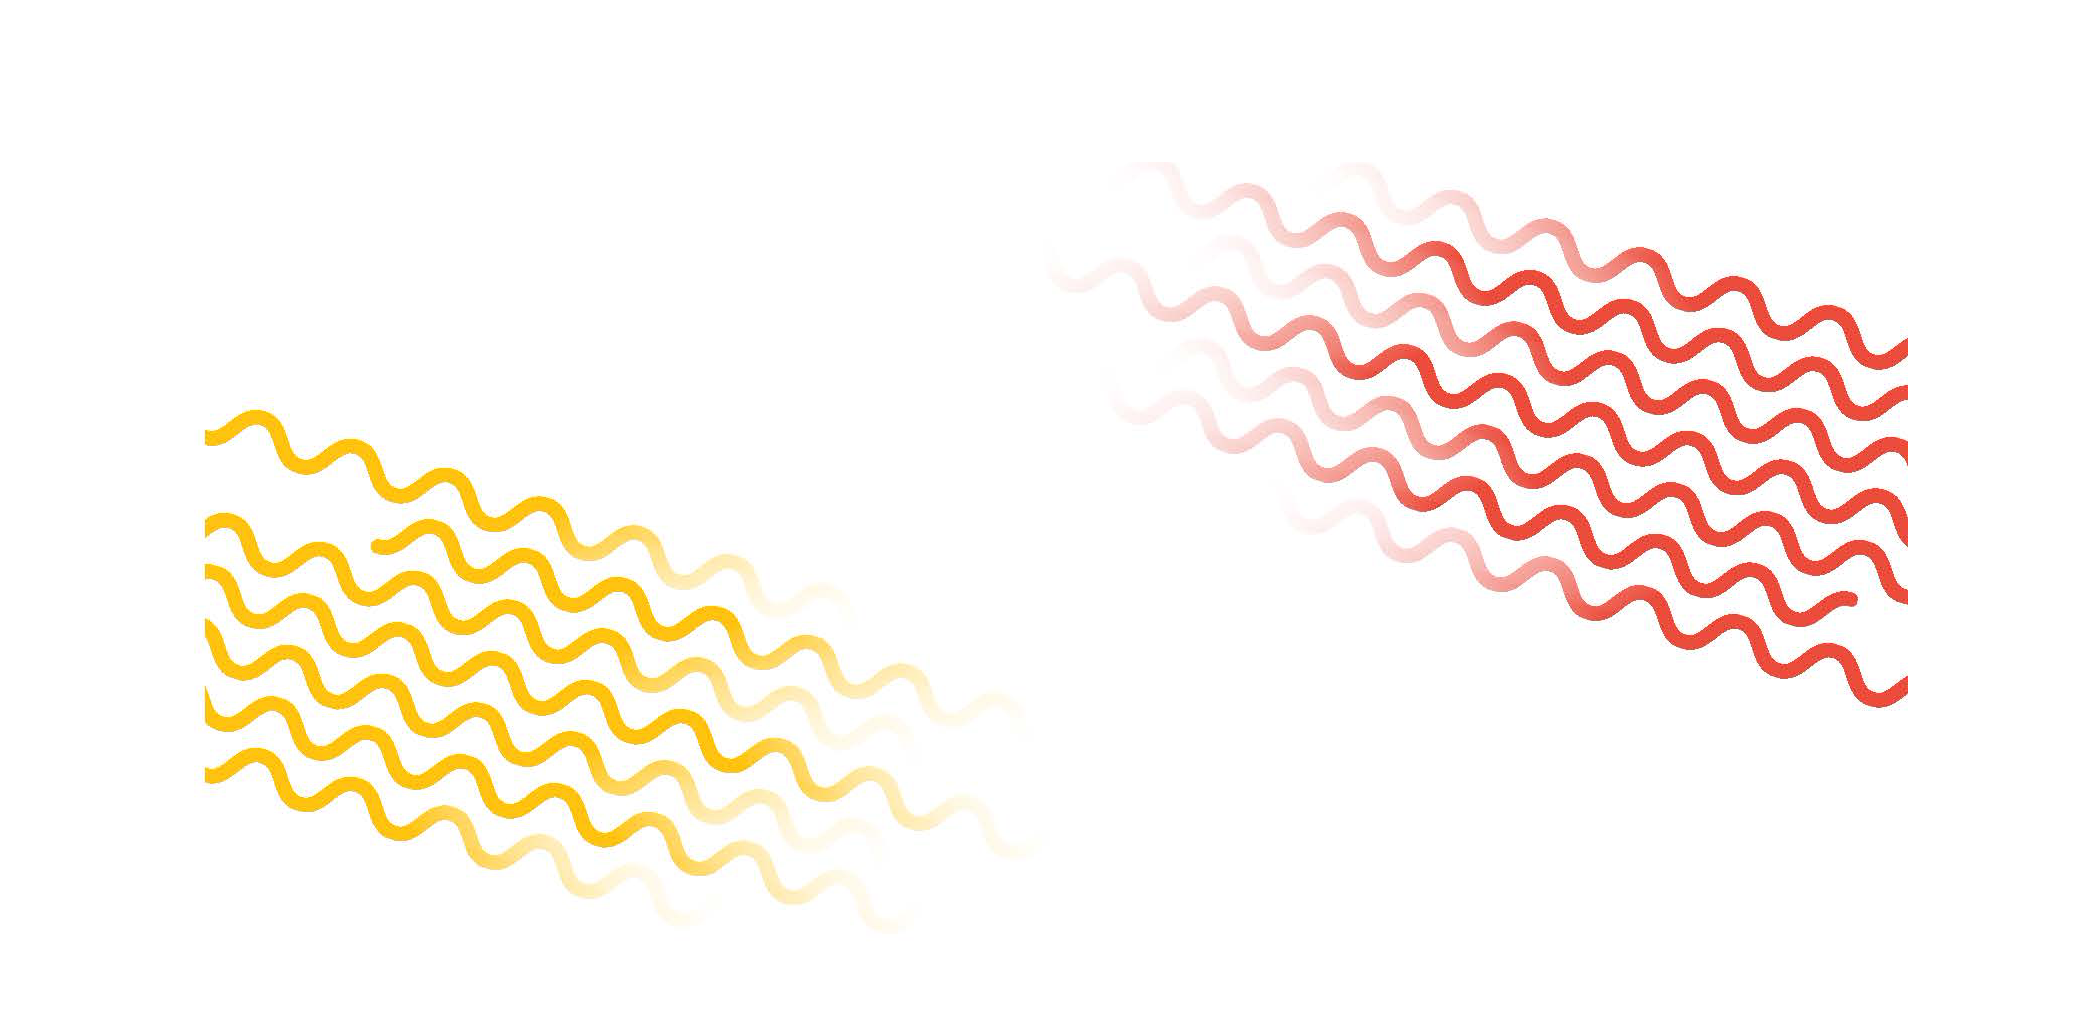 Illustration of wavy red and yellow lines